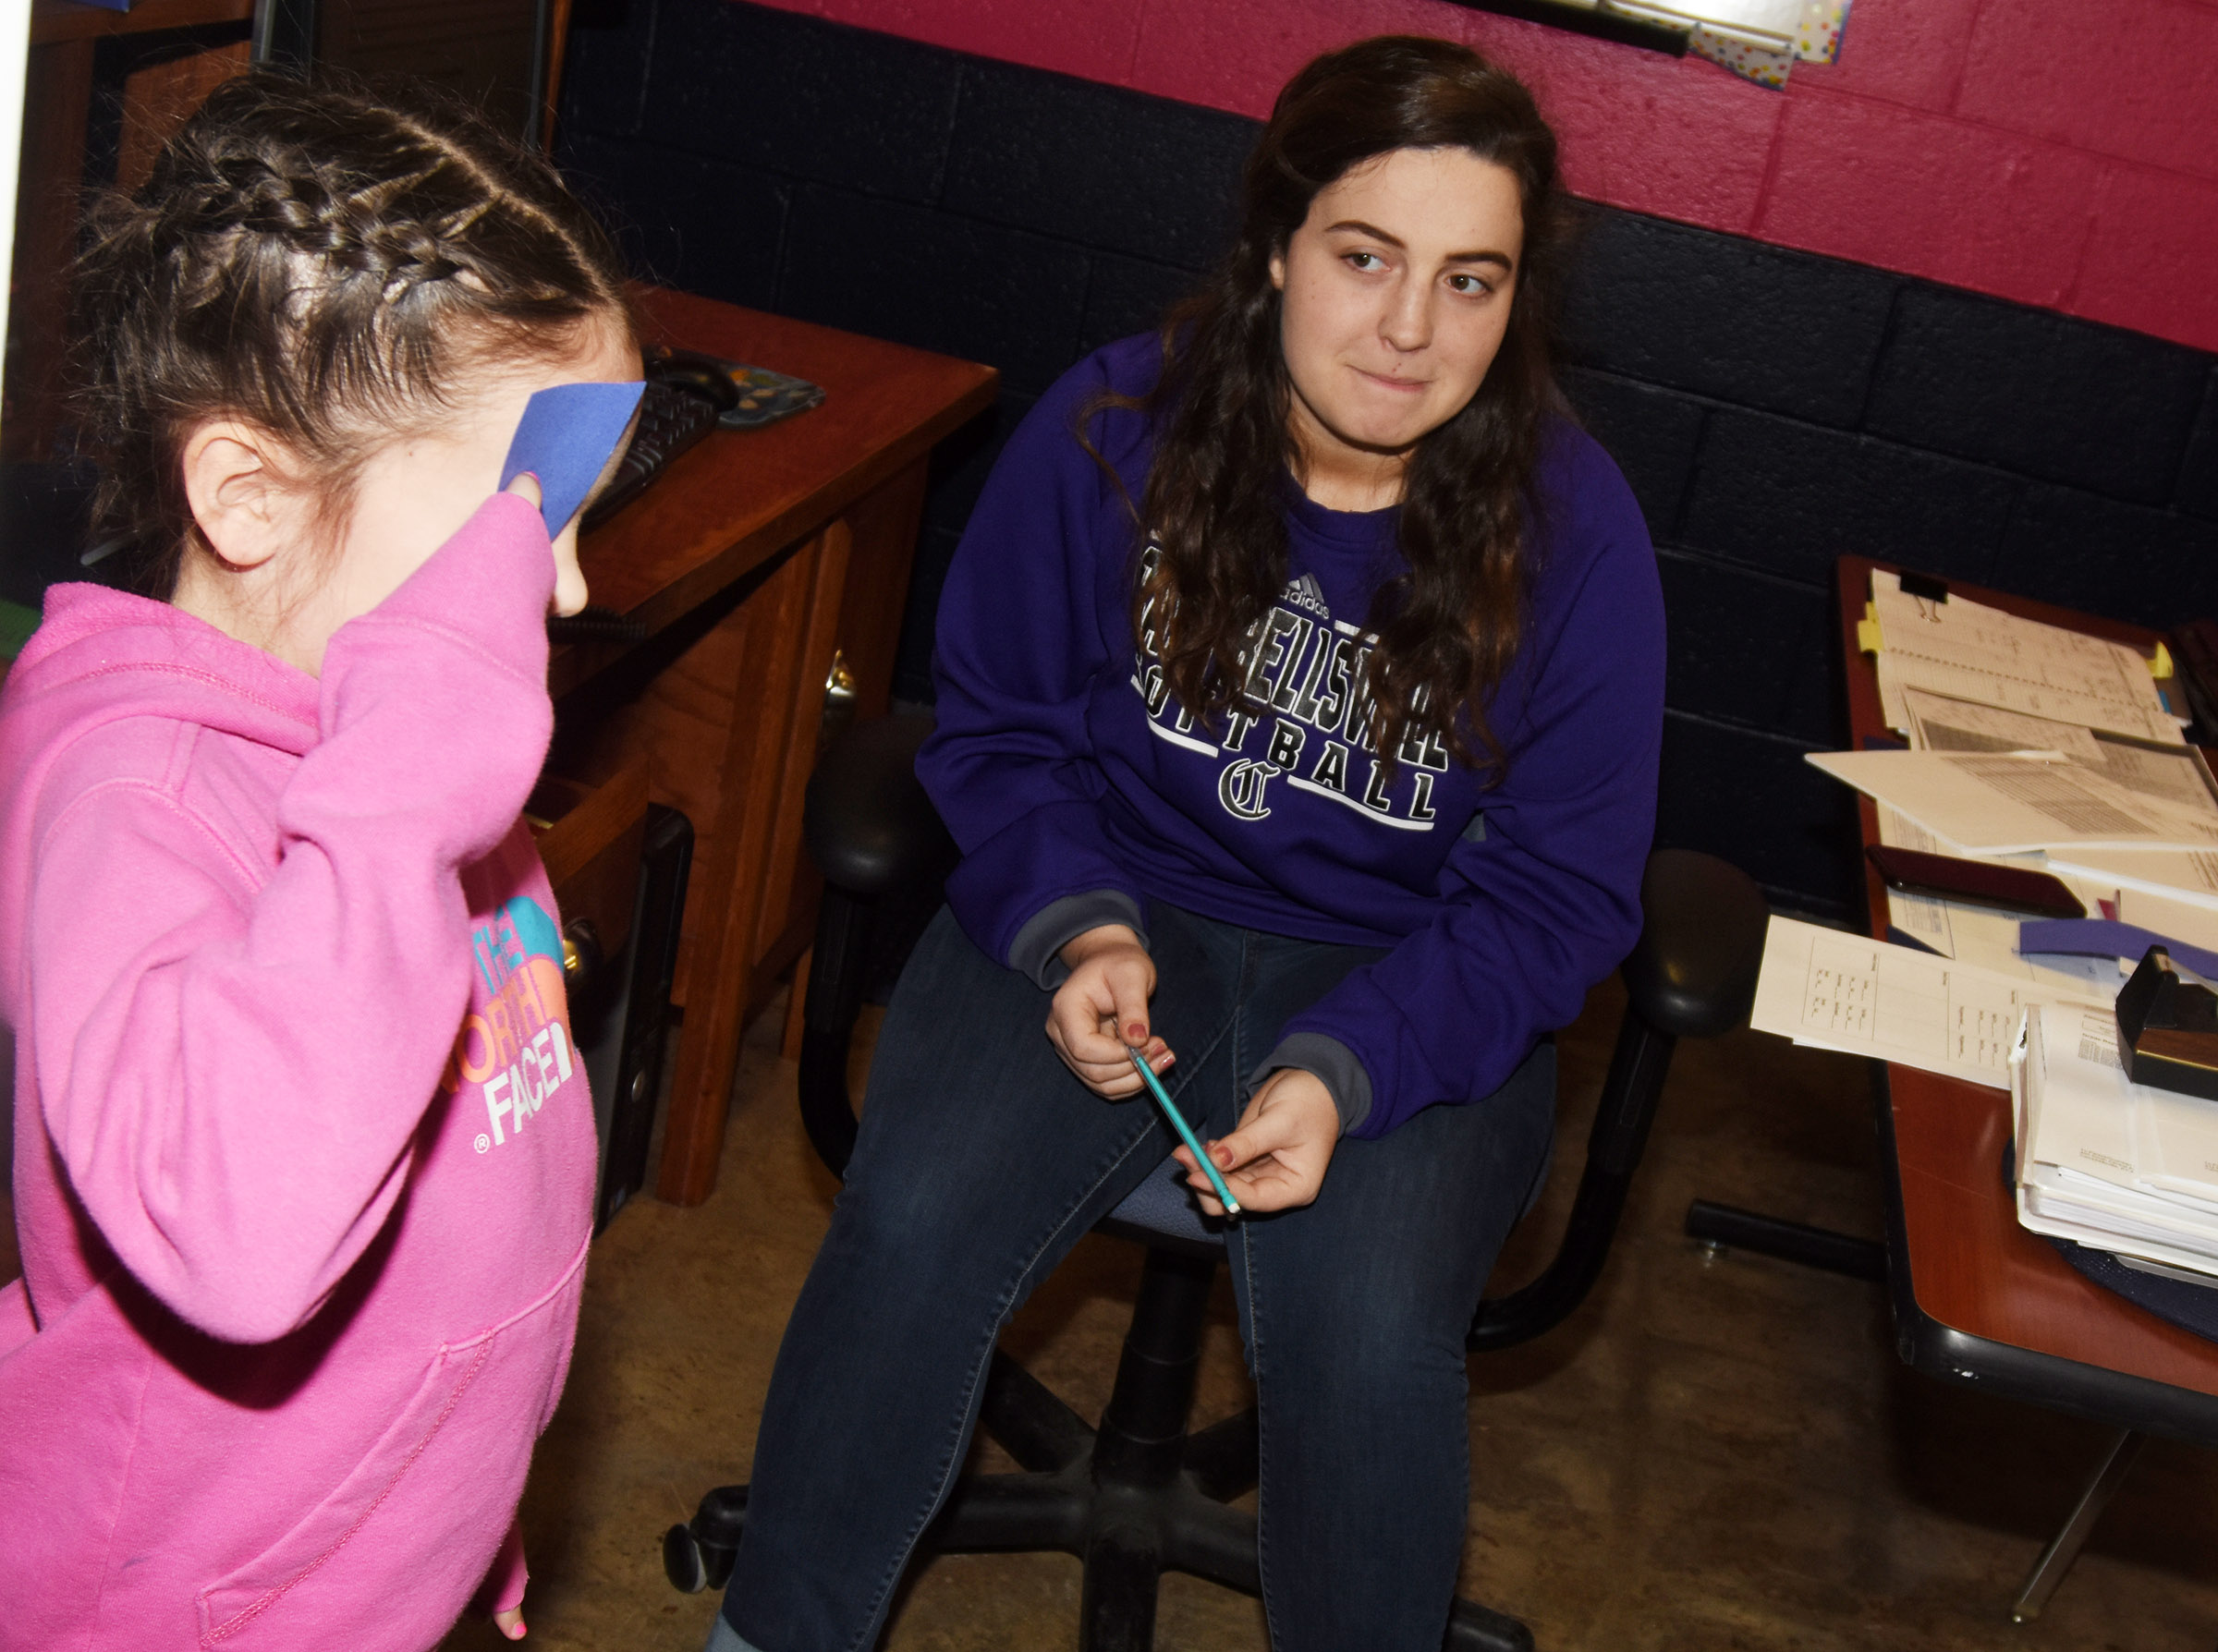 CHS senior Caitlin Bright listens as CES first-grader Serenity Jones undergoes an eye exam. Bright is completing an internship with Beth Wiedewitsch, who is a guidance counselor at Campbellsville elementary and middle schools.